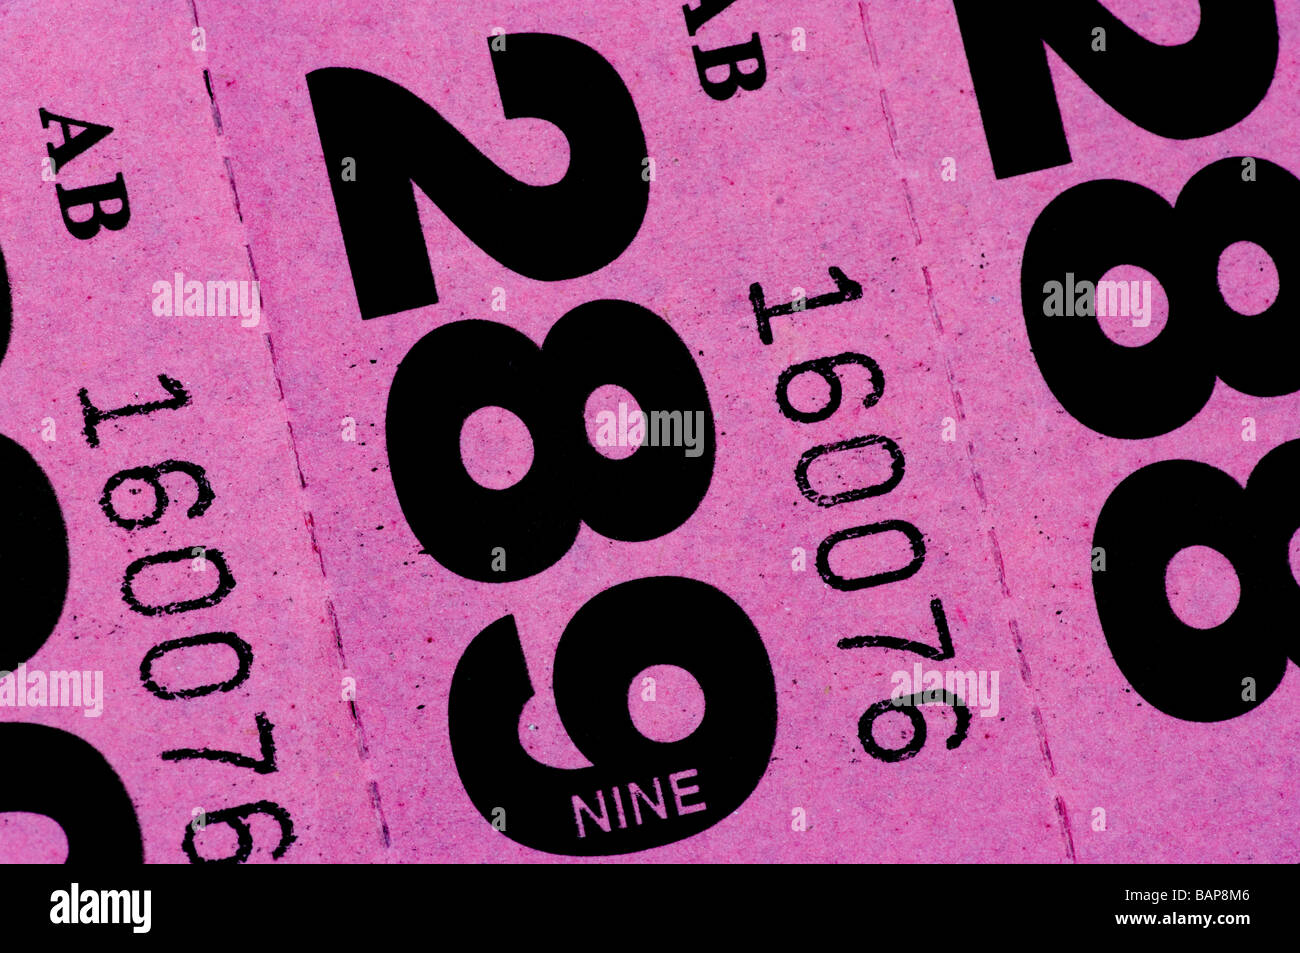 pink raffle tickets cloakroom ticket stock photo royalty pink raffle tickets cloakroom ticket